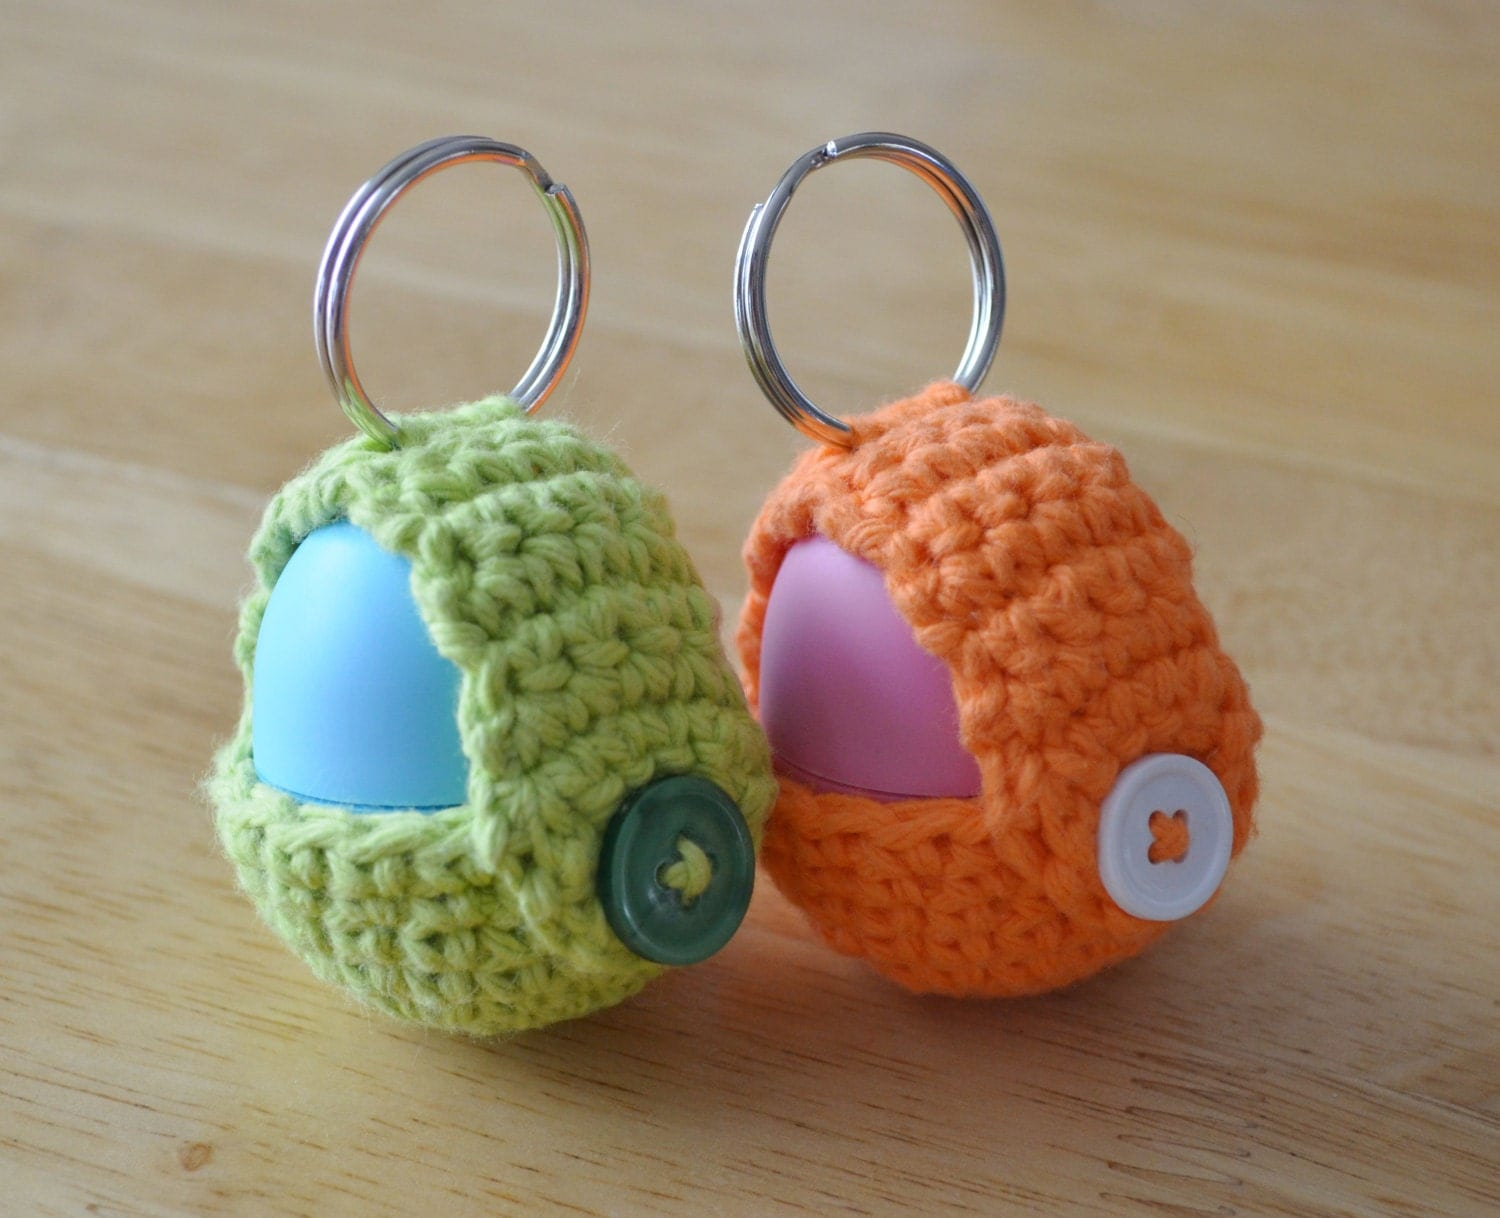 Crochet Patterns Keychain : Crochet Pattern Keychain EOS Lip Balm Holder by Nell22 on Etsy